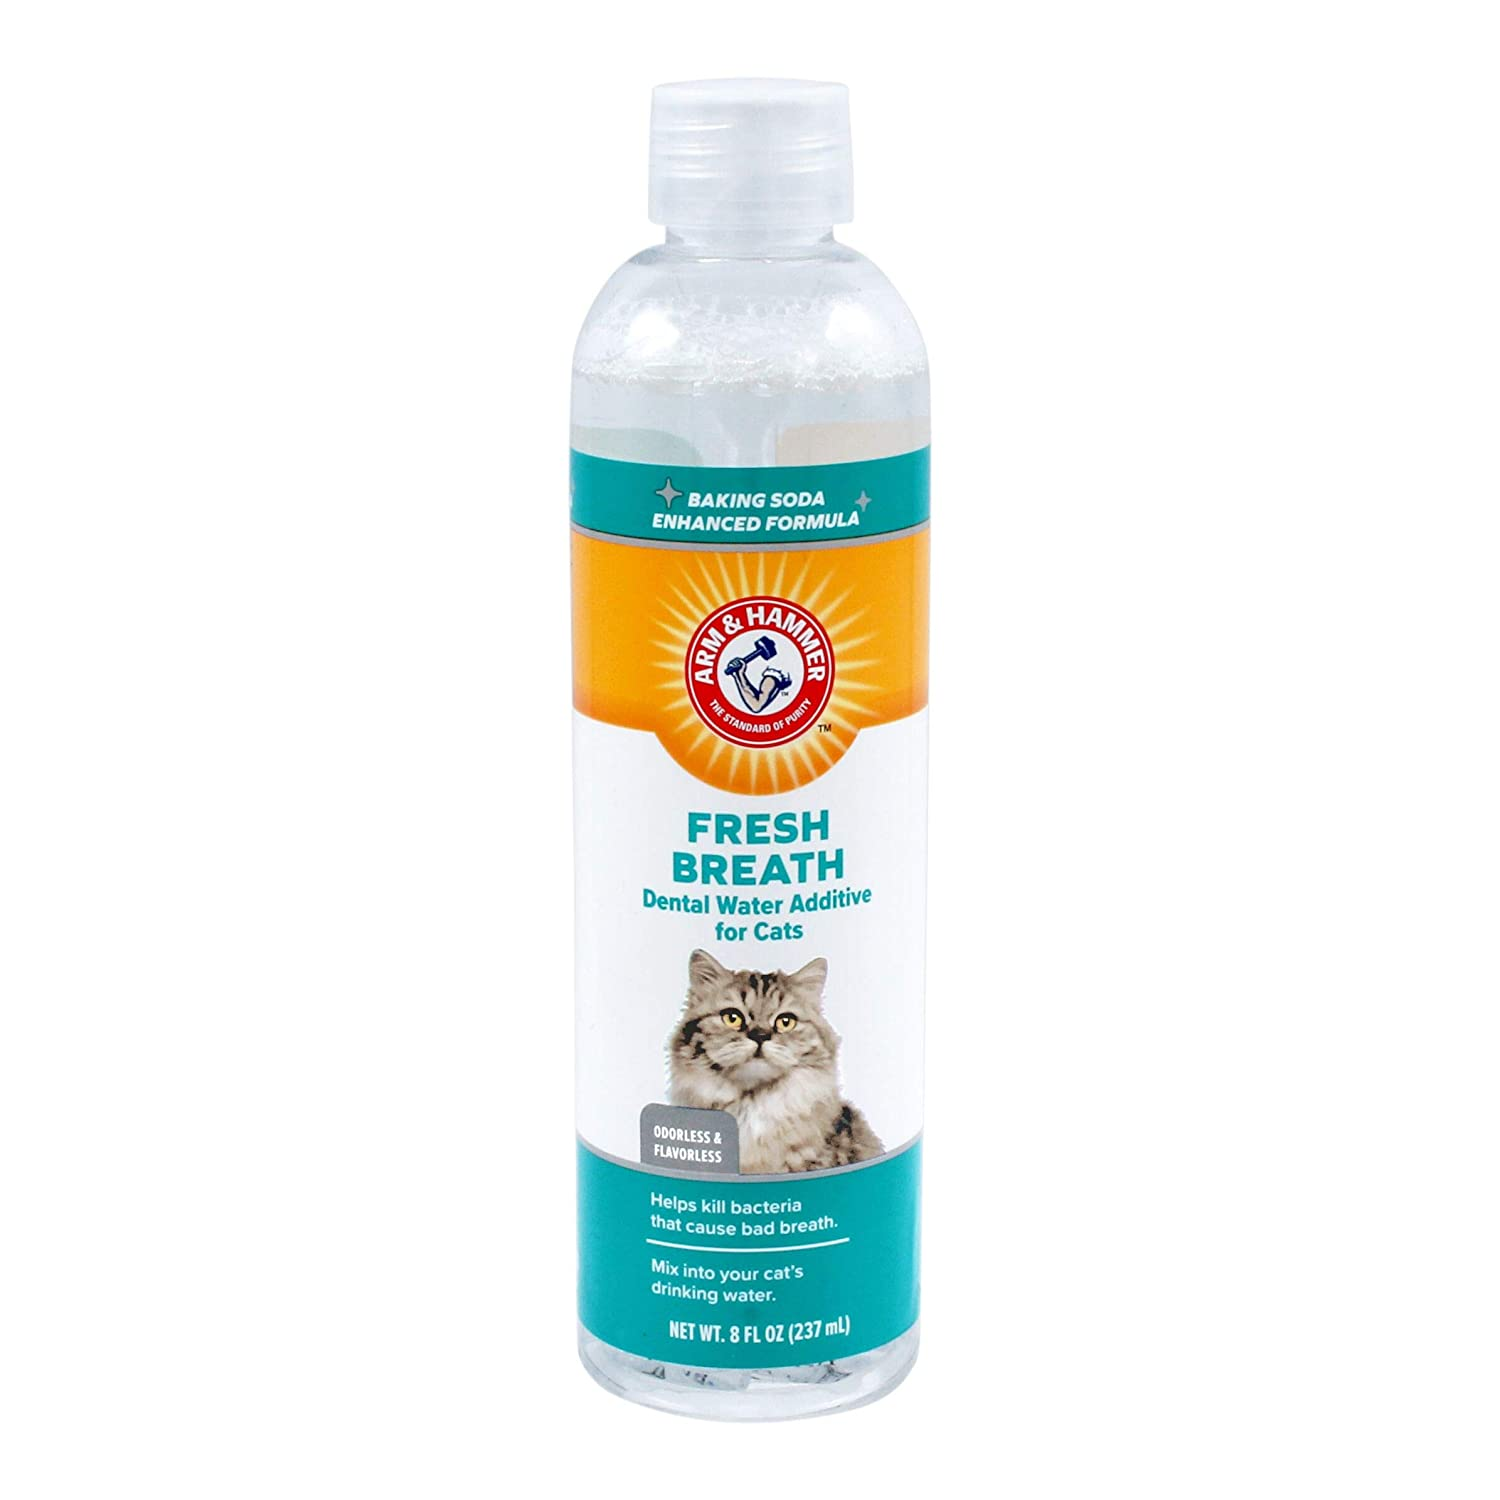 Arm & Hammer Cat Dental Care Solutions | Cat Toothpaste, Toothbrush, Dental Water Additive & Dental Sprays | Vital to Your Cat's Health